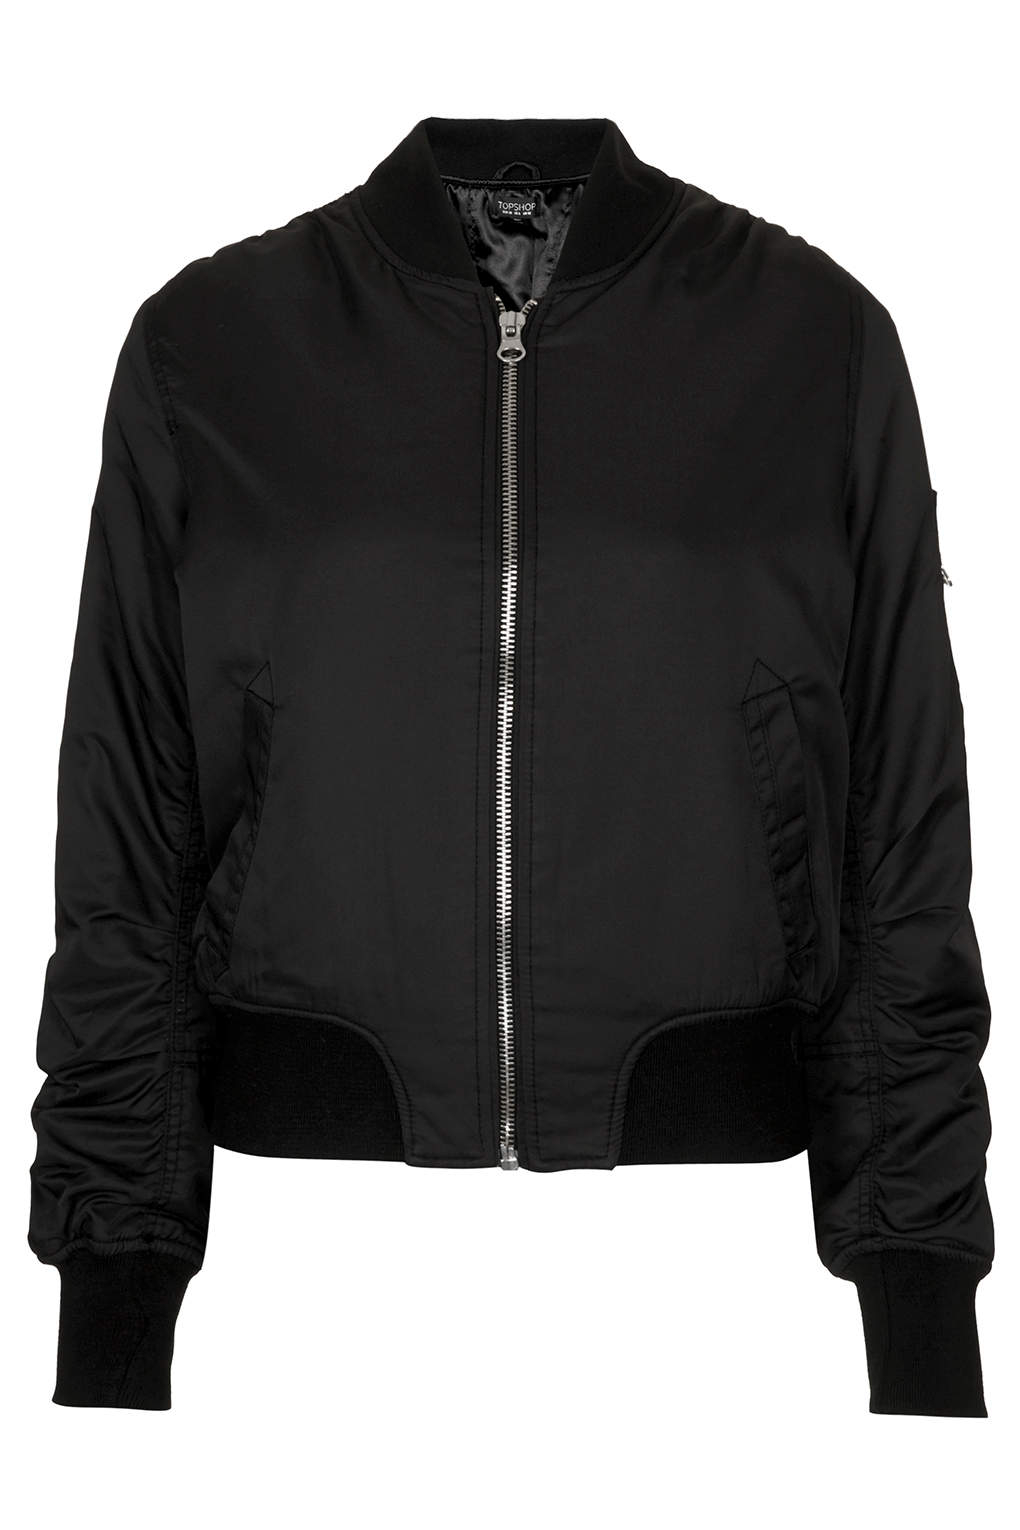 Online shopping for Clothing, Shoes & Jewelry from a great selection of Lightweight Jackets, Leather & Faux Leather, Down & Down Alternative, Vests, Wool & Blends & more at everyday low prices.